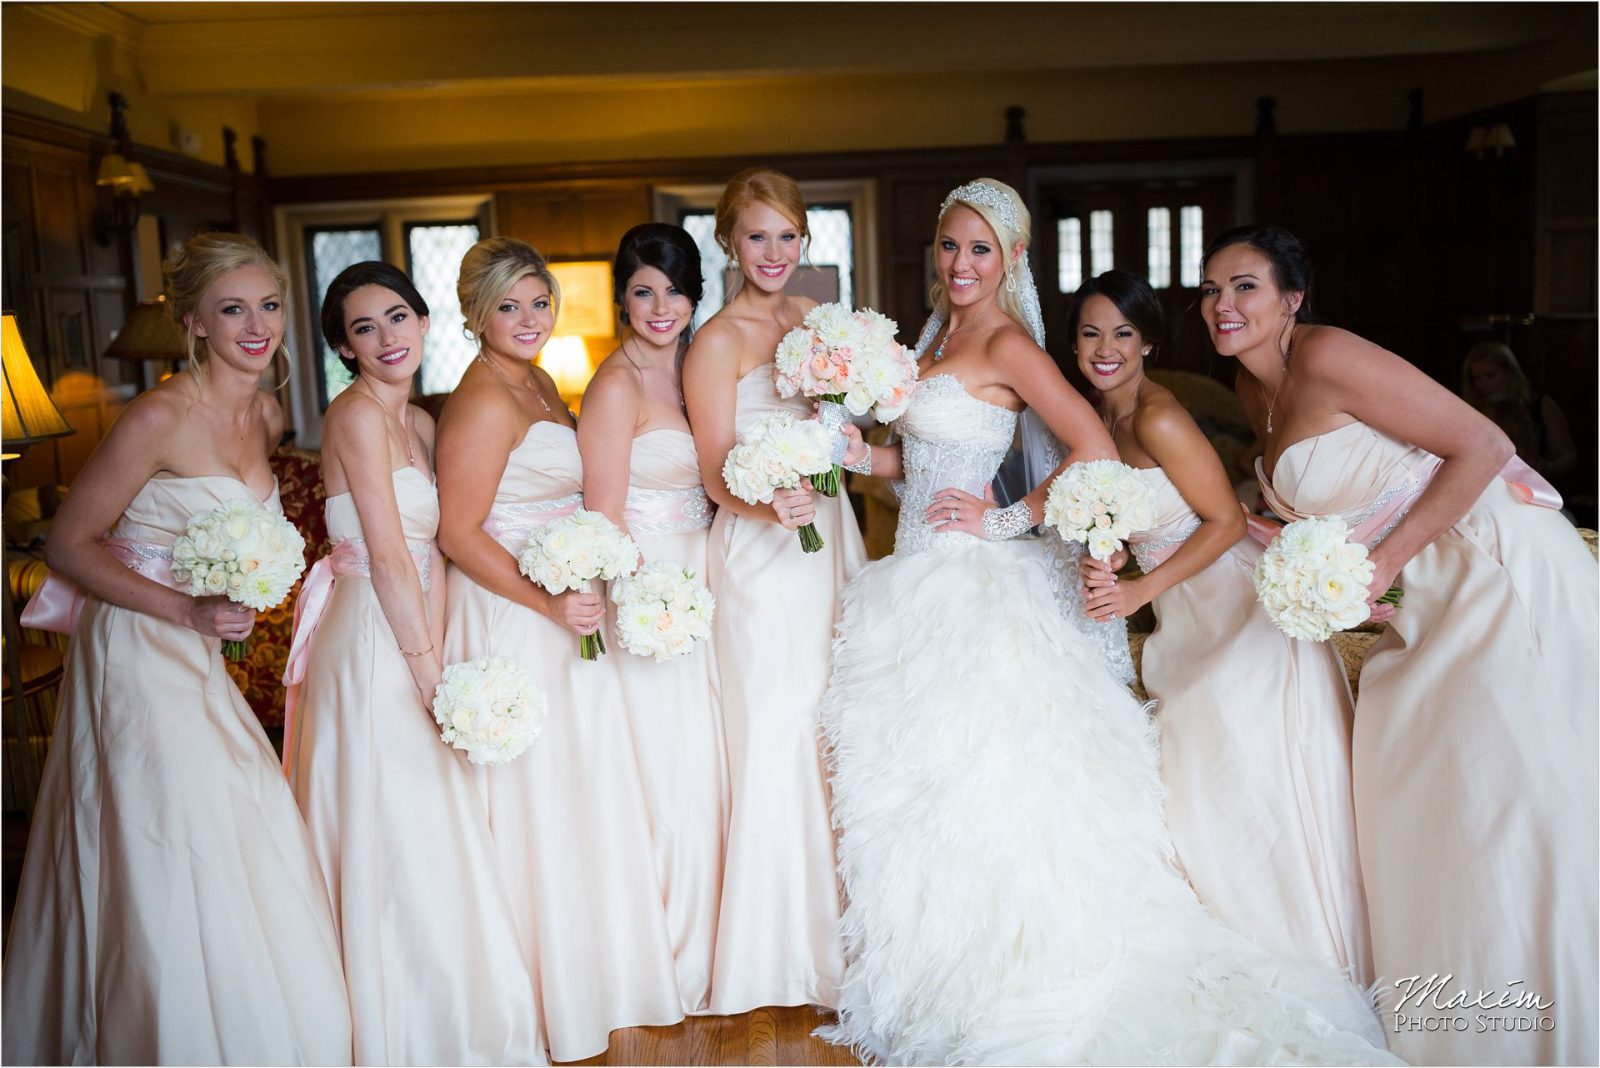 Cincinnati Wedding Photographers Hyde Park United Methodist Church Wedding bride bridesmaids